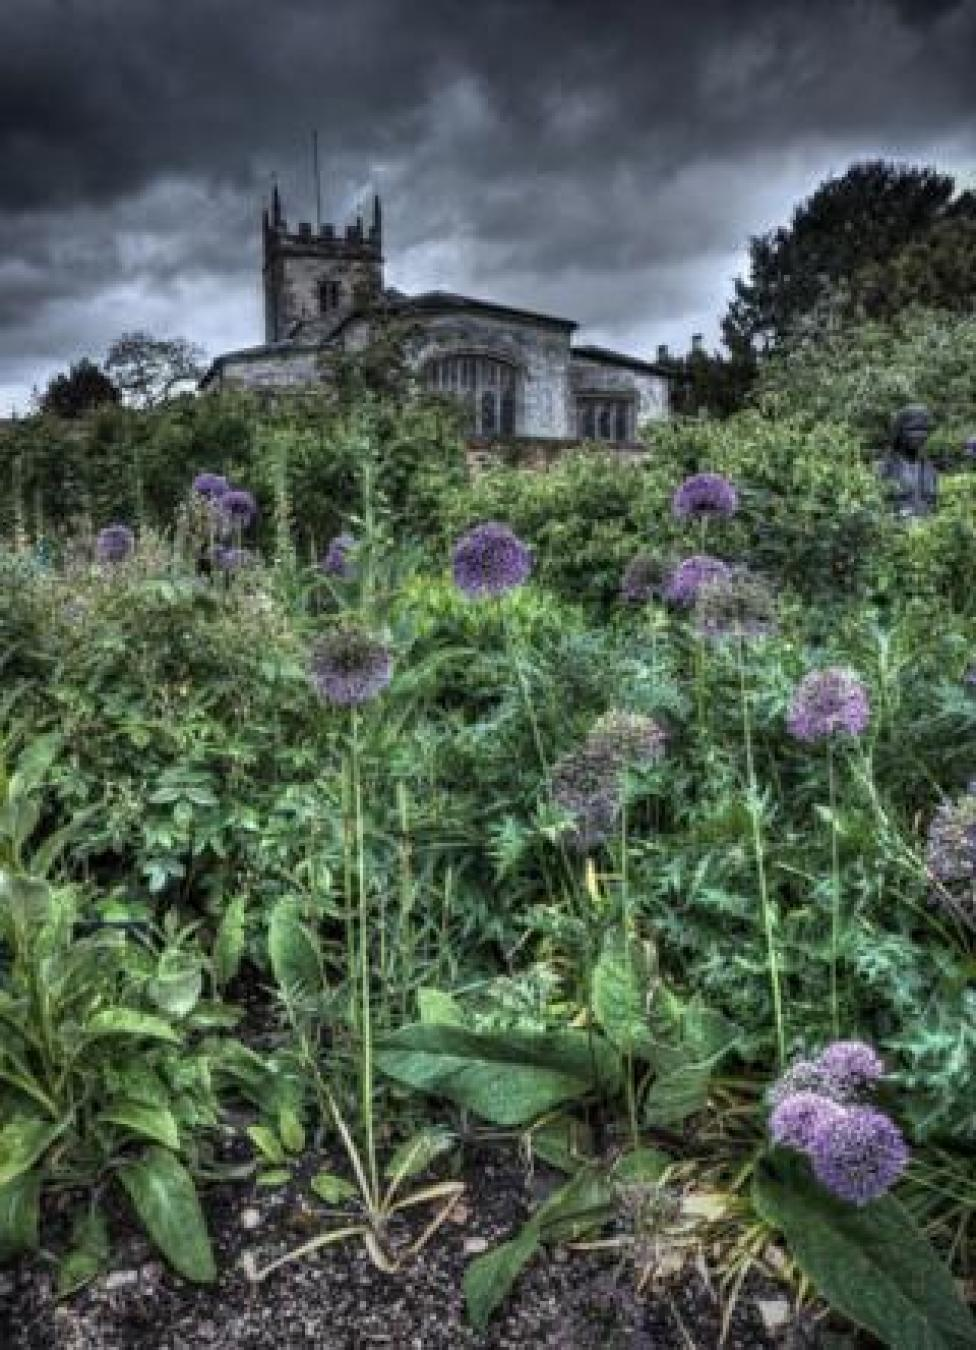 Wild flowers and weeds with a church in the background